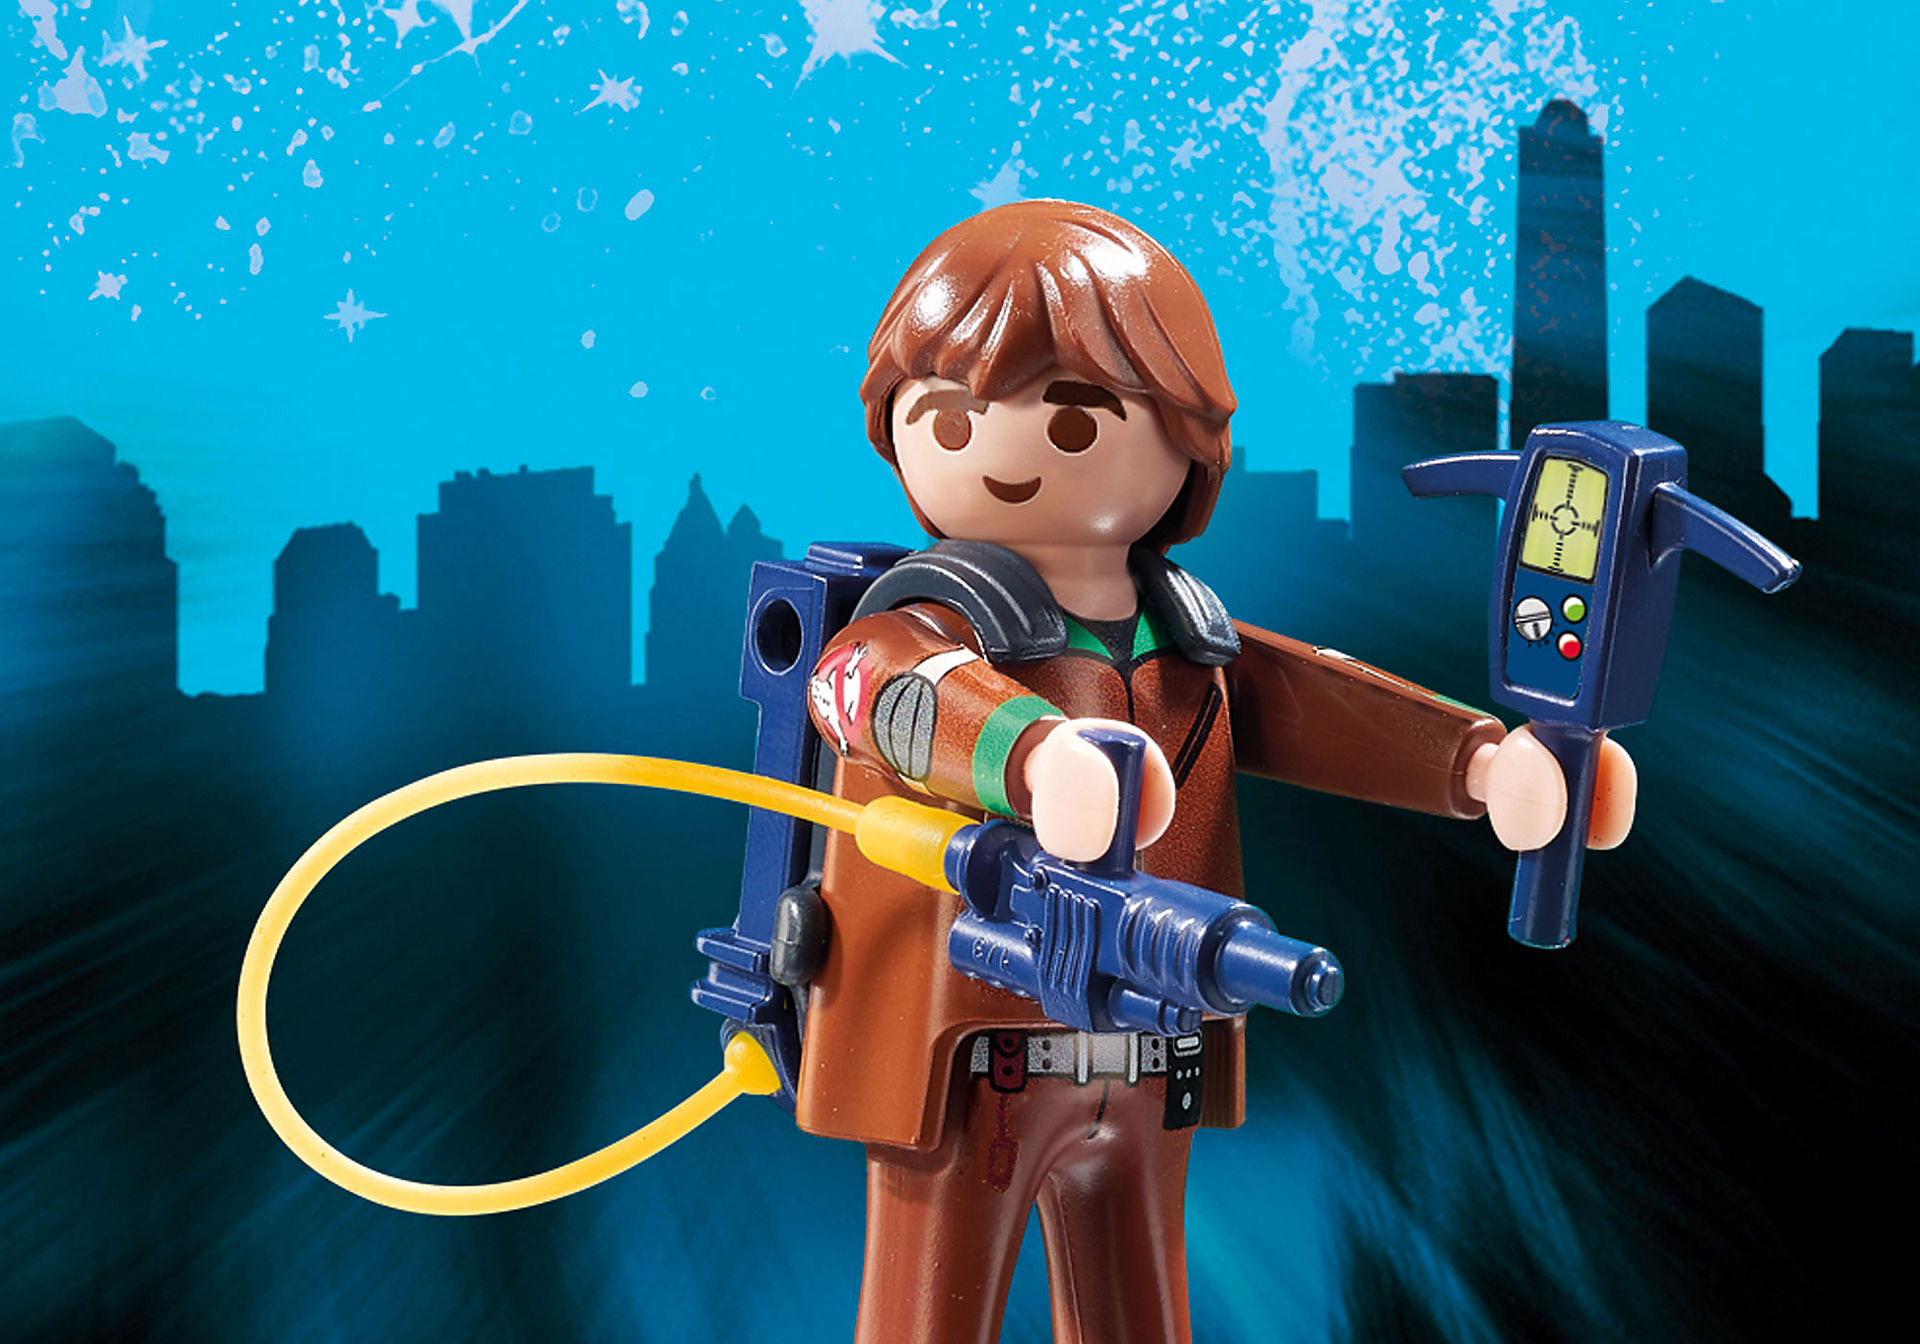 http://media.playmobil.com/i/playmobil/9385_product_extra2/Δρ. Βένκμαν με ελικόπτερο